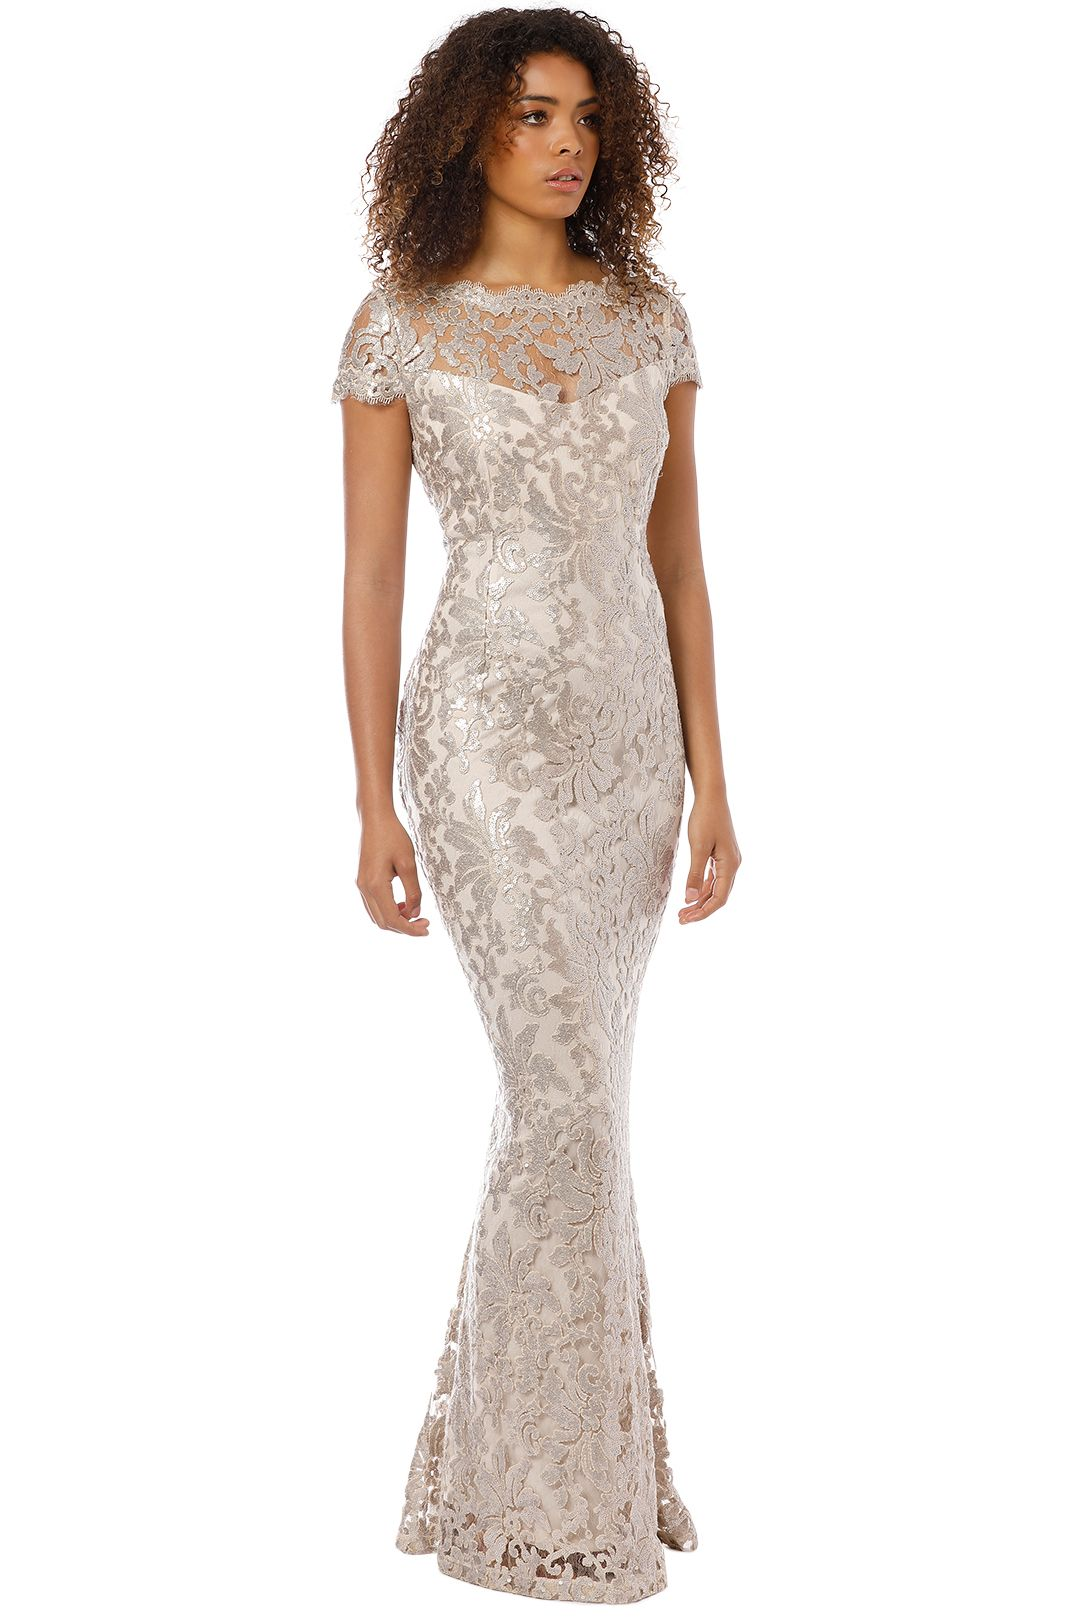 Montique - Aubrey Embroidered Lace Gown - Mink - Side